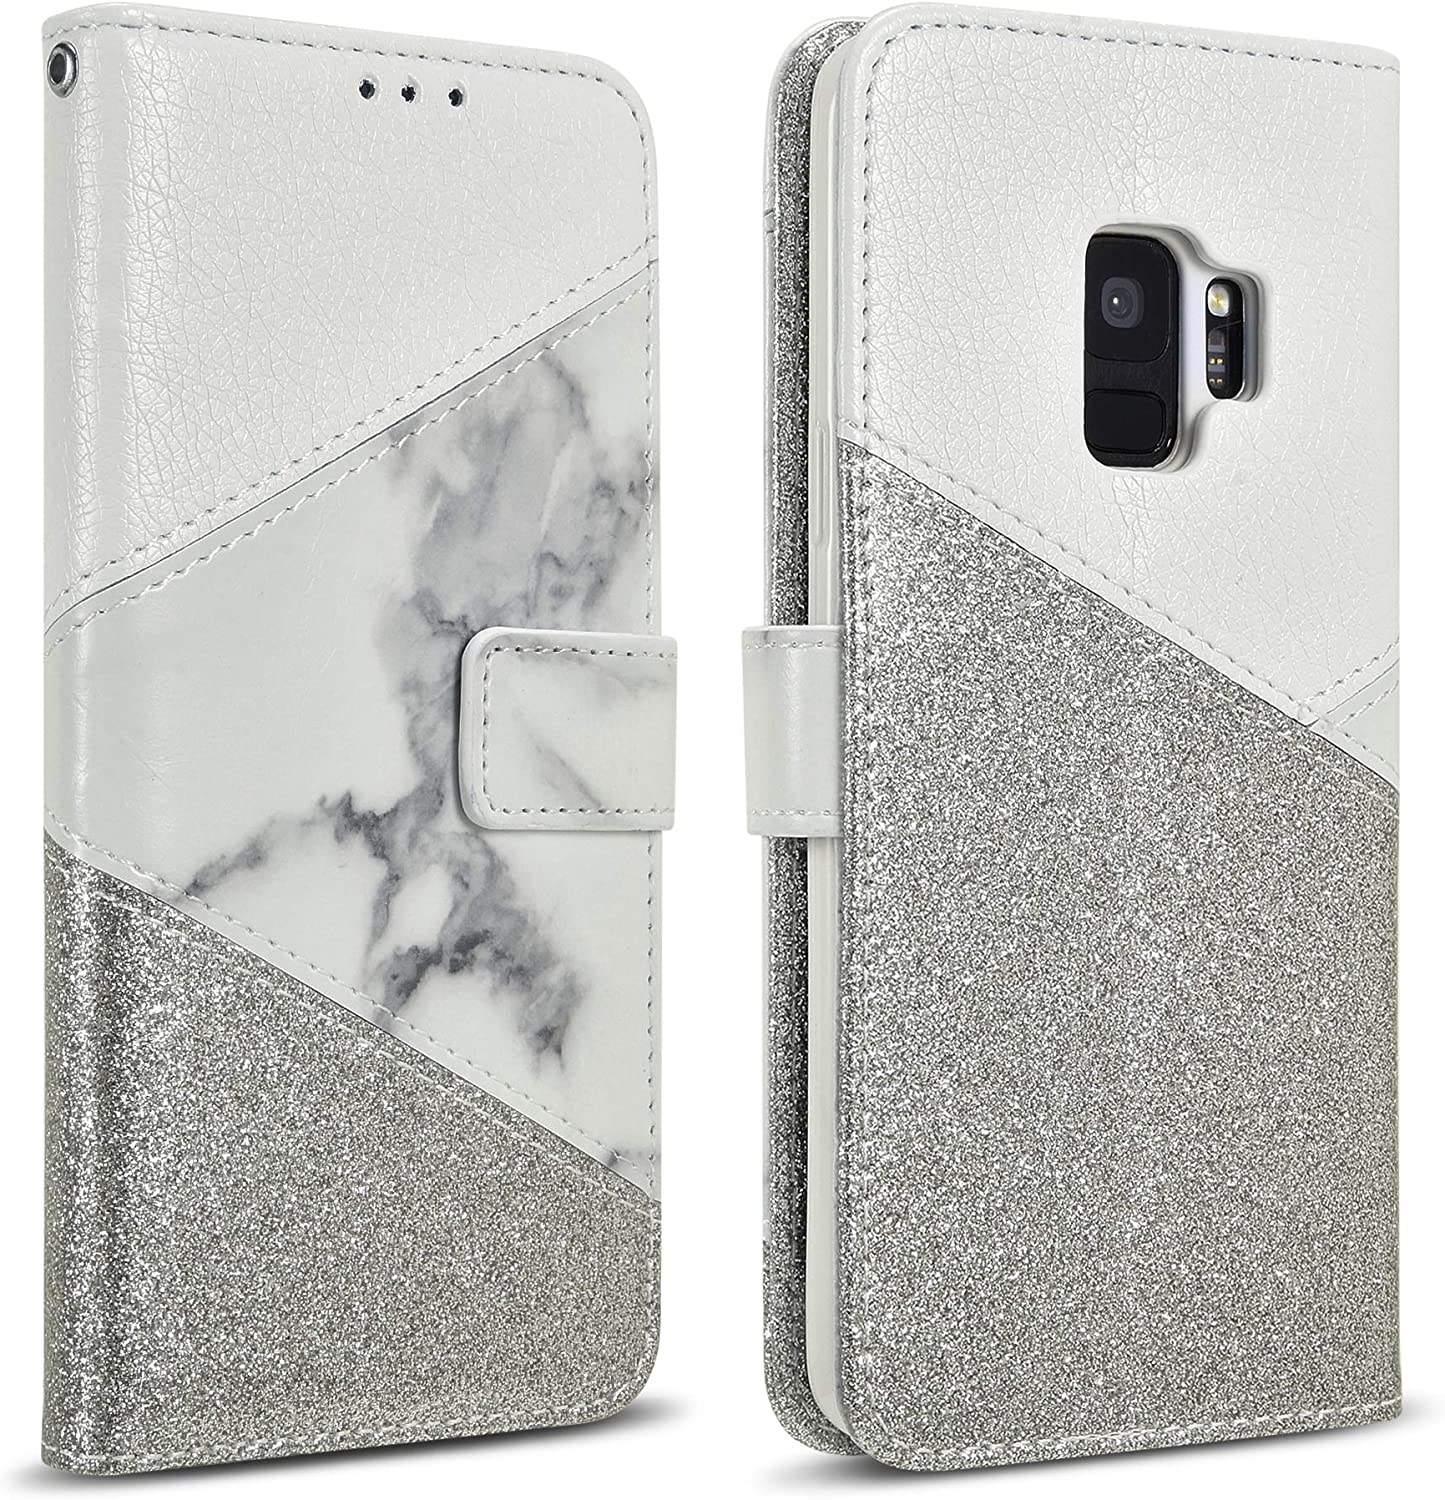 iPhone 7 Plus Case Coupon Wrist Wallet Galaxy S8 Purse Cell Phone Wristlet Bag Marble iPhone 8 Wristlet gray white marble